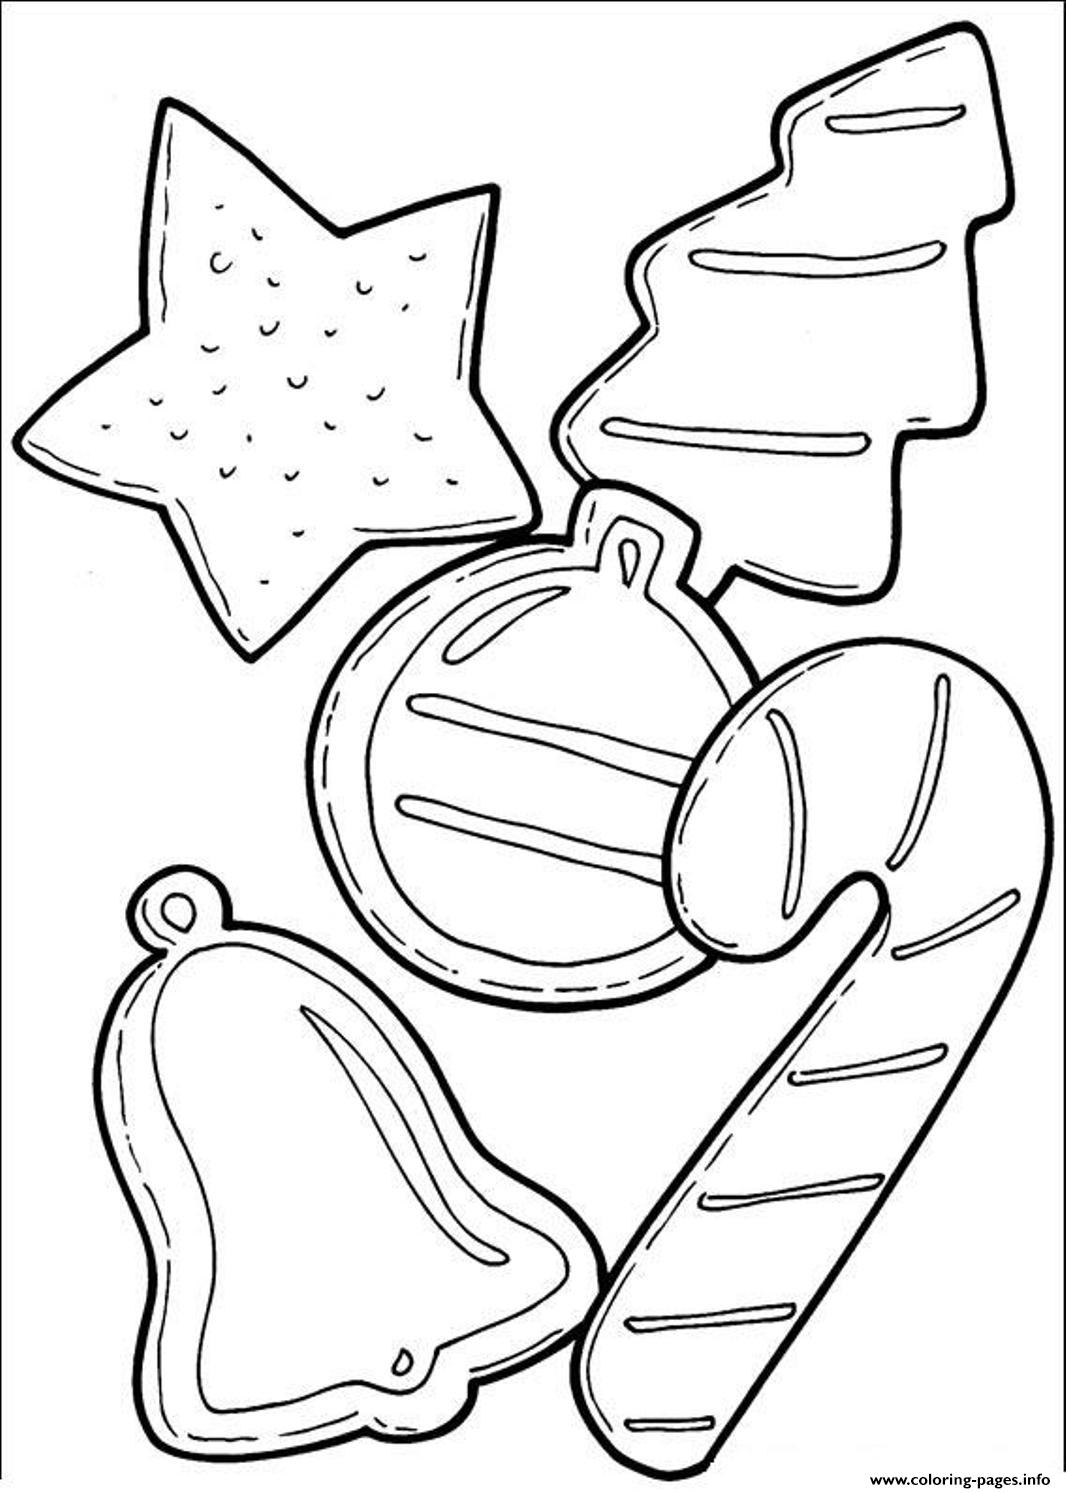 Cookies And Candy Cane For Christmas C4fa Coloring Pages Printable